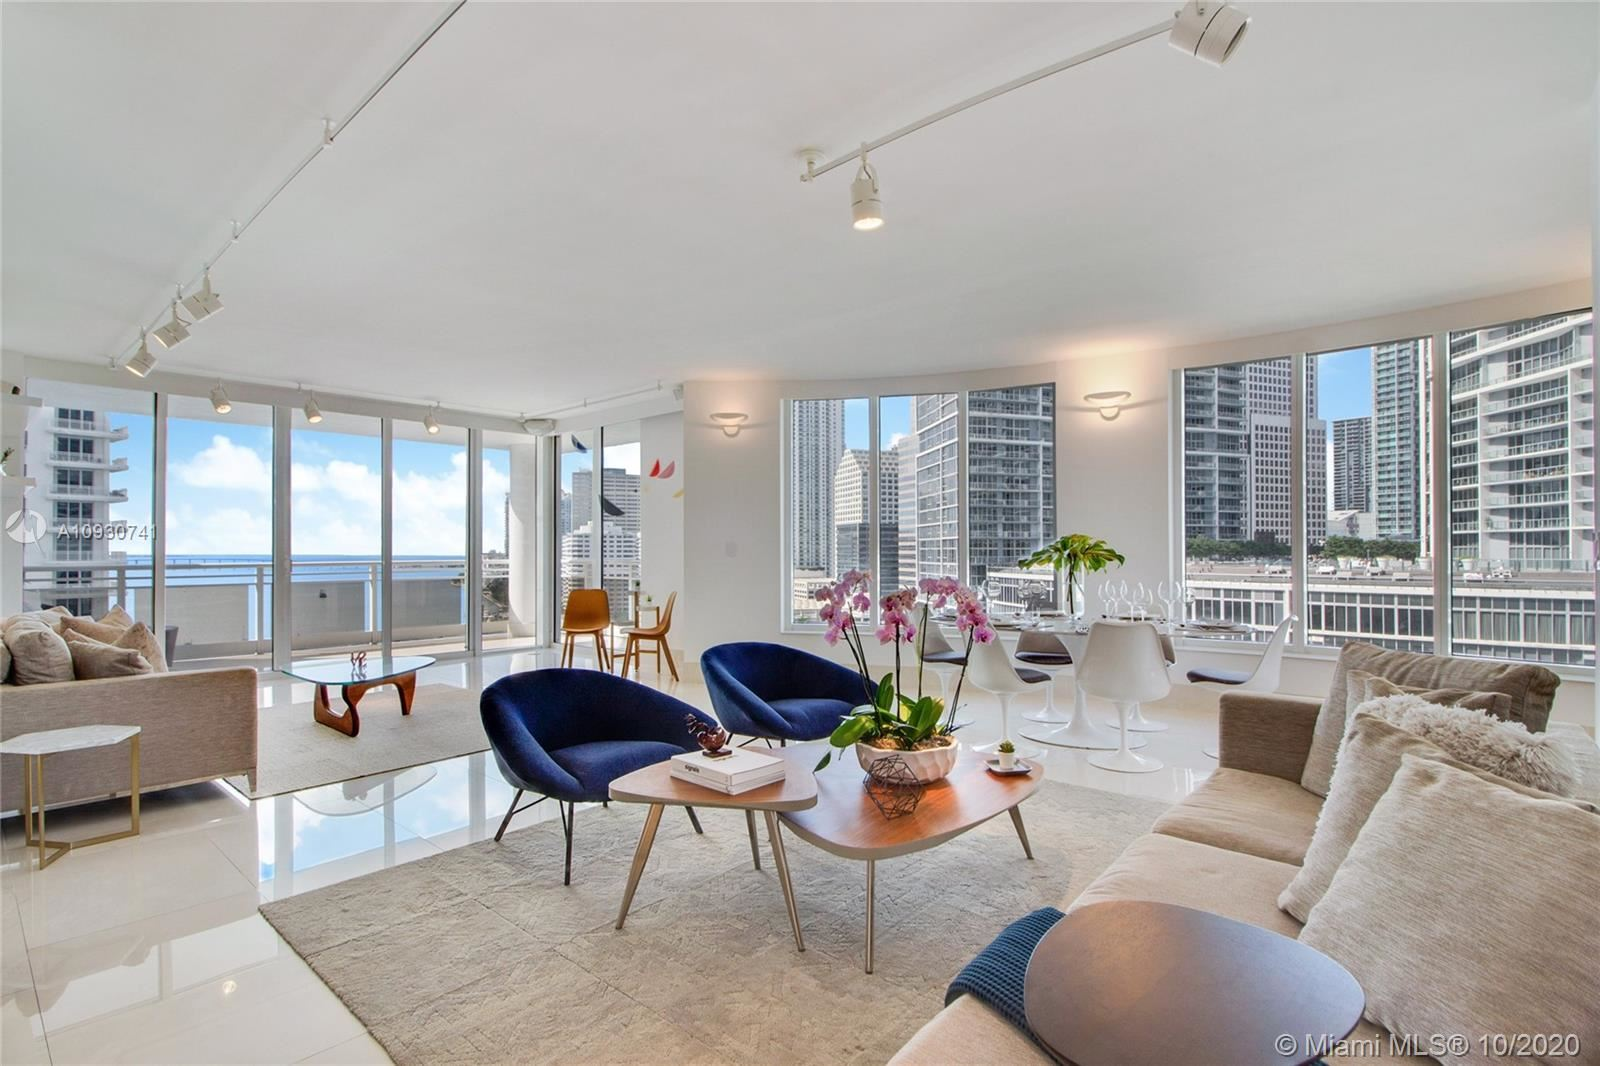 901 Brickell Key Blvd #1604, Miami, FL 33131 - #: A10930741